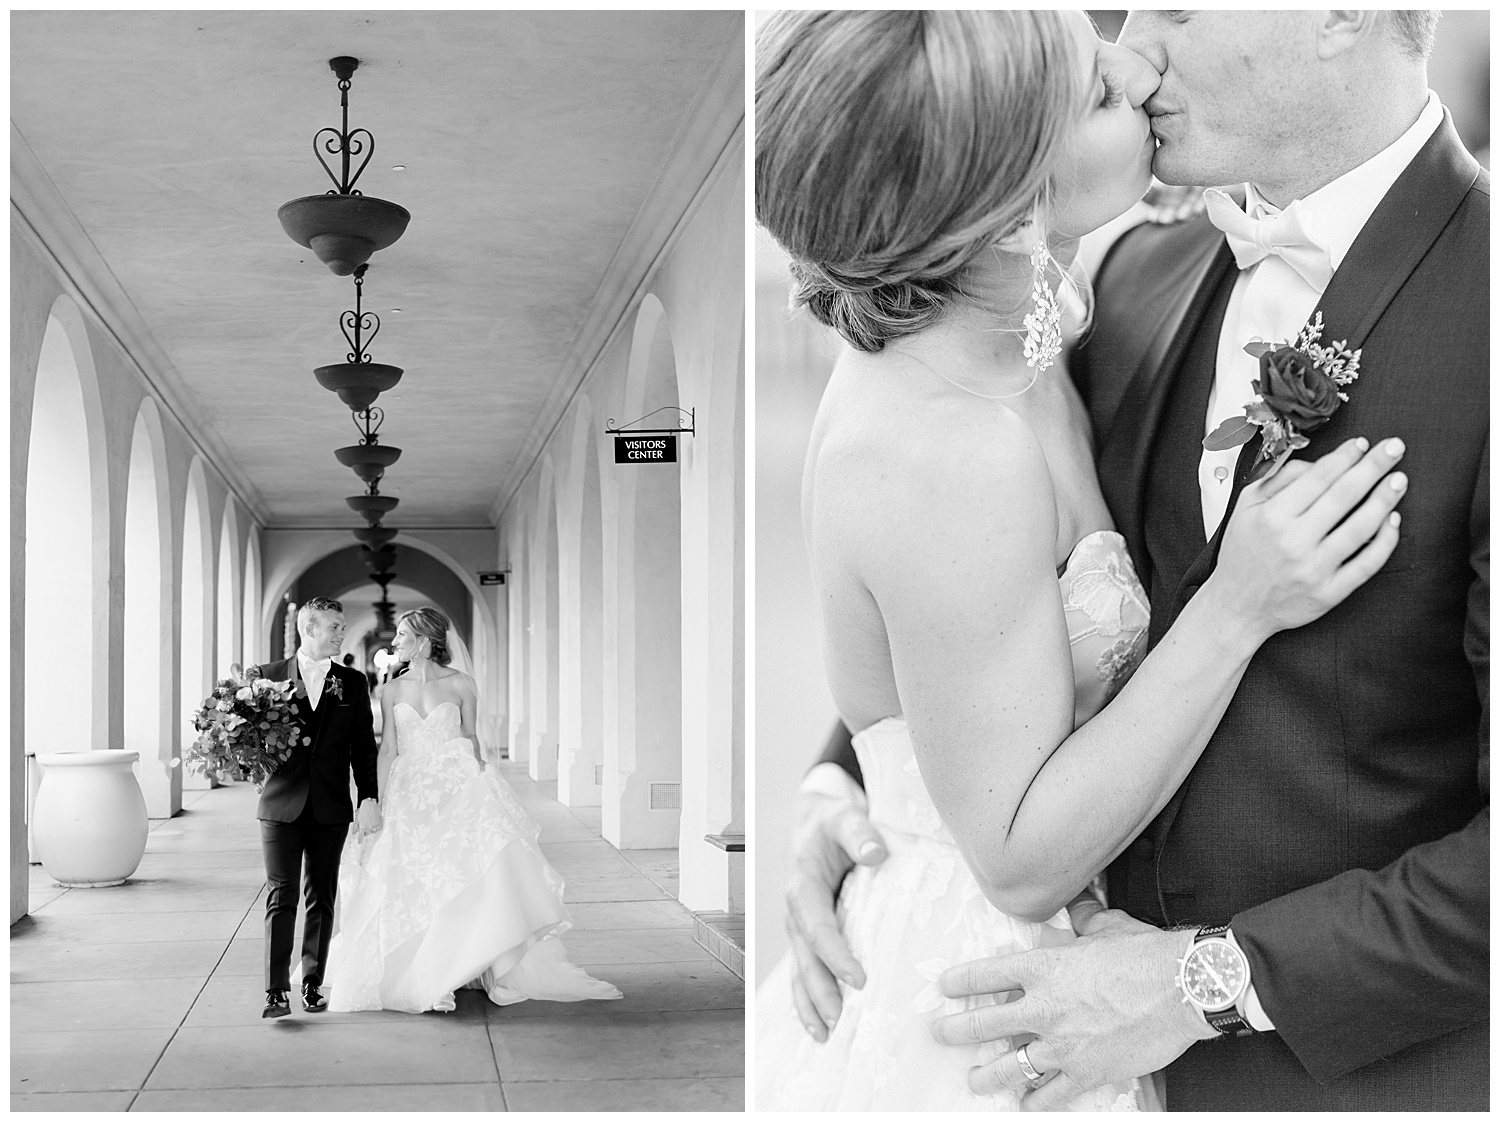 classic-black-and-white-bride-and-groom-wedding-portrait.jpg